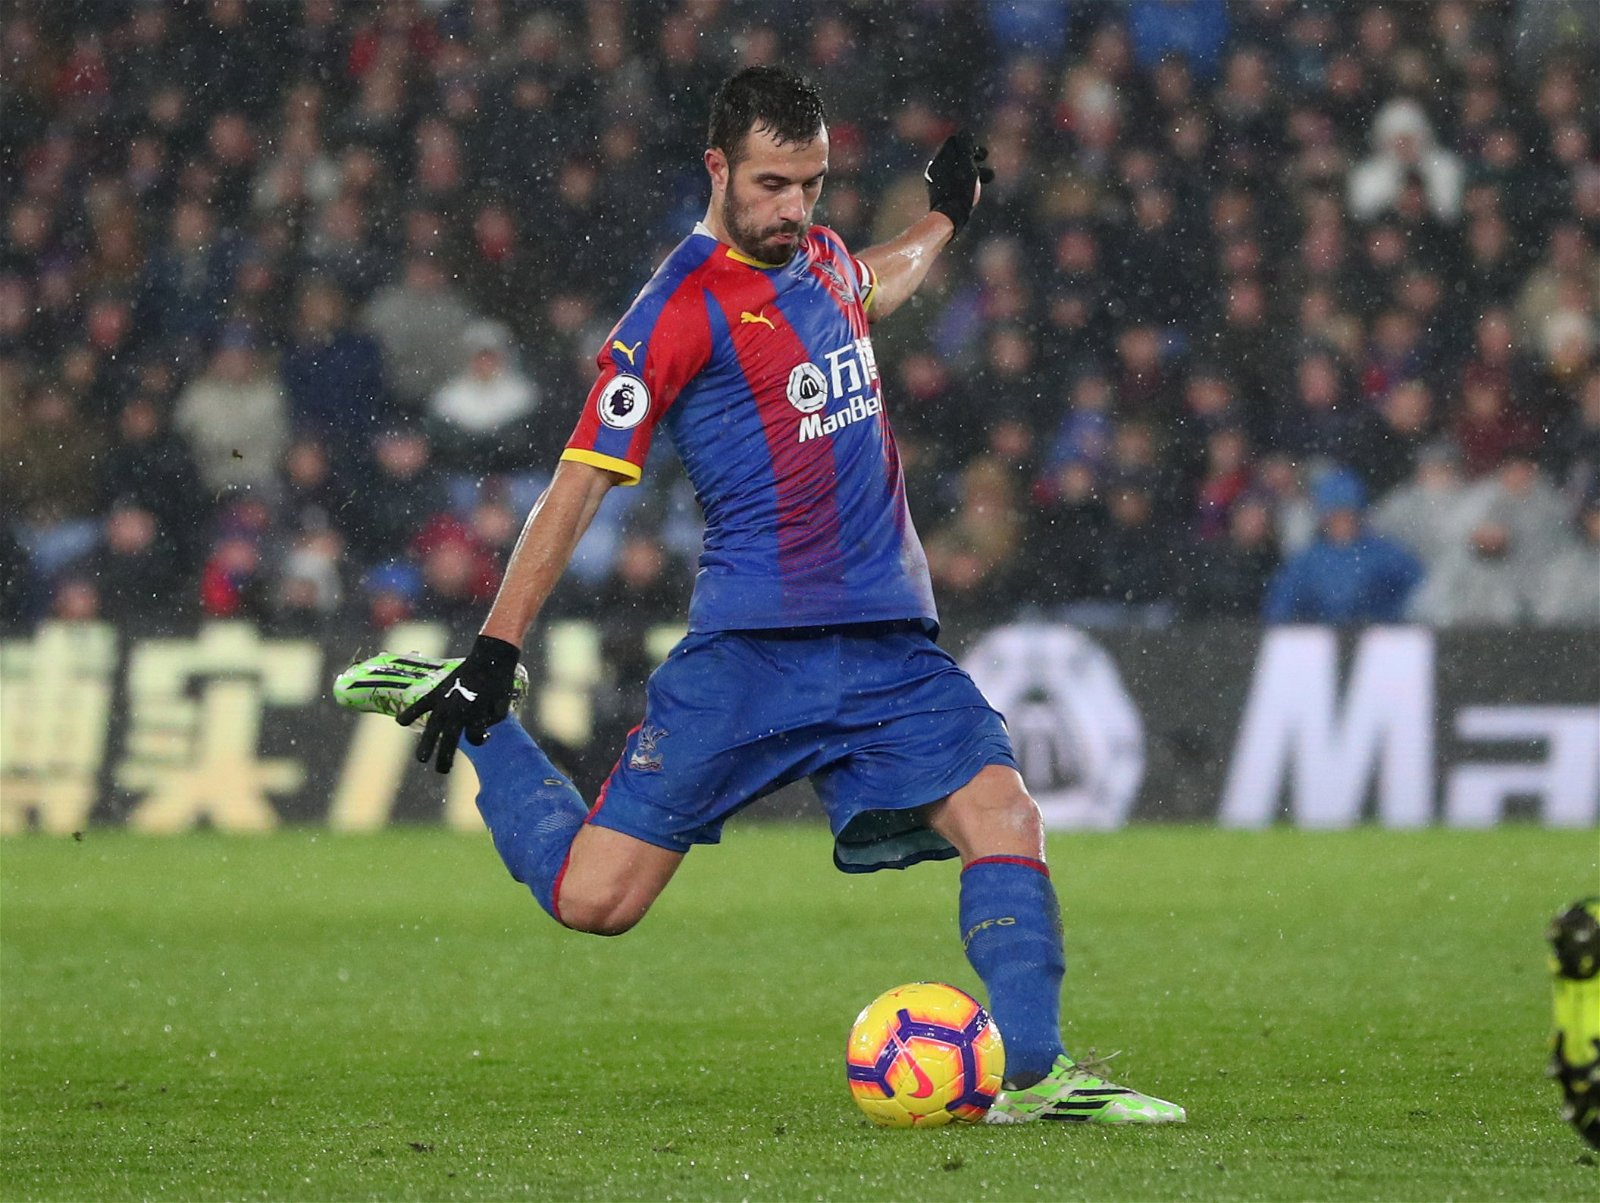 2018 12 15T154459Z 1783851954 RC1971BCEBF0 RTRMADP 3 SOCCER ENGLAND CRY LEI - Beautiful Boots: Ranking the eye-catching footwear on show at Crystal Palace this season